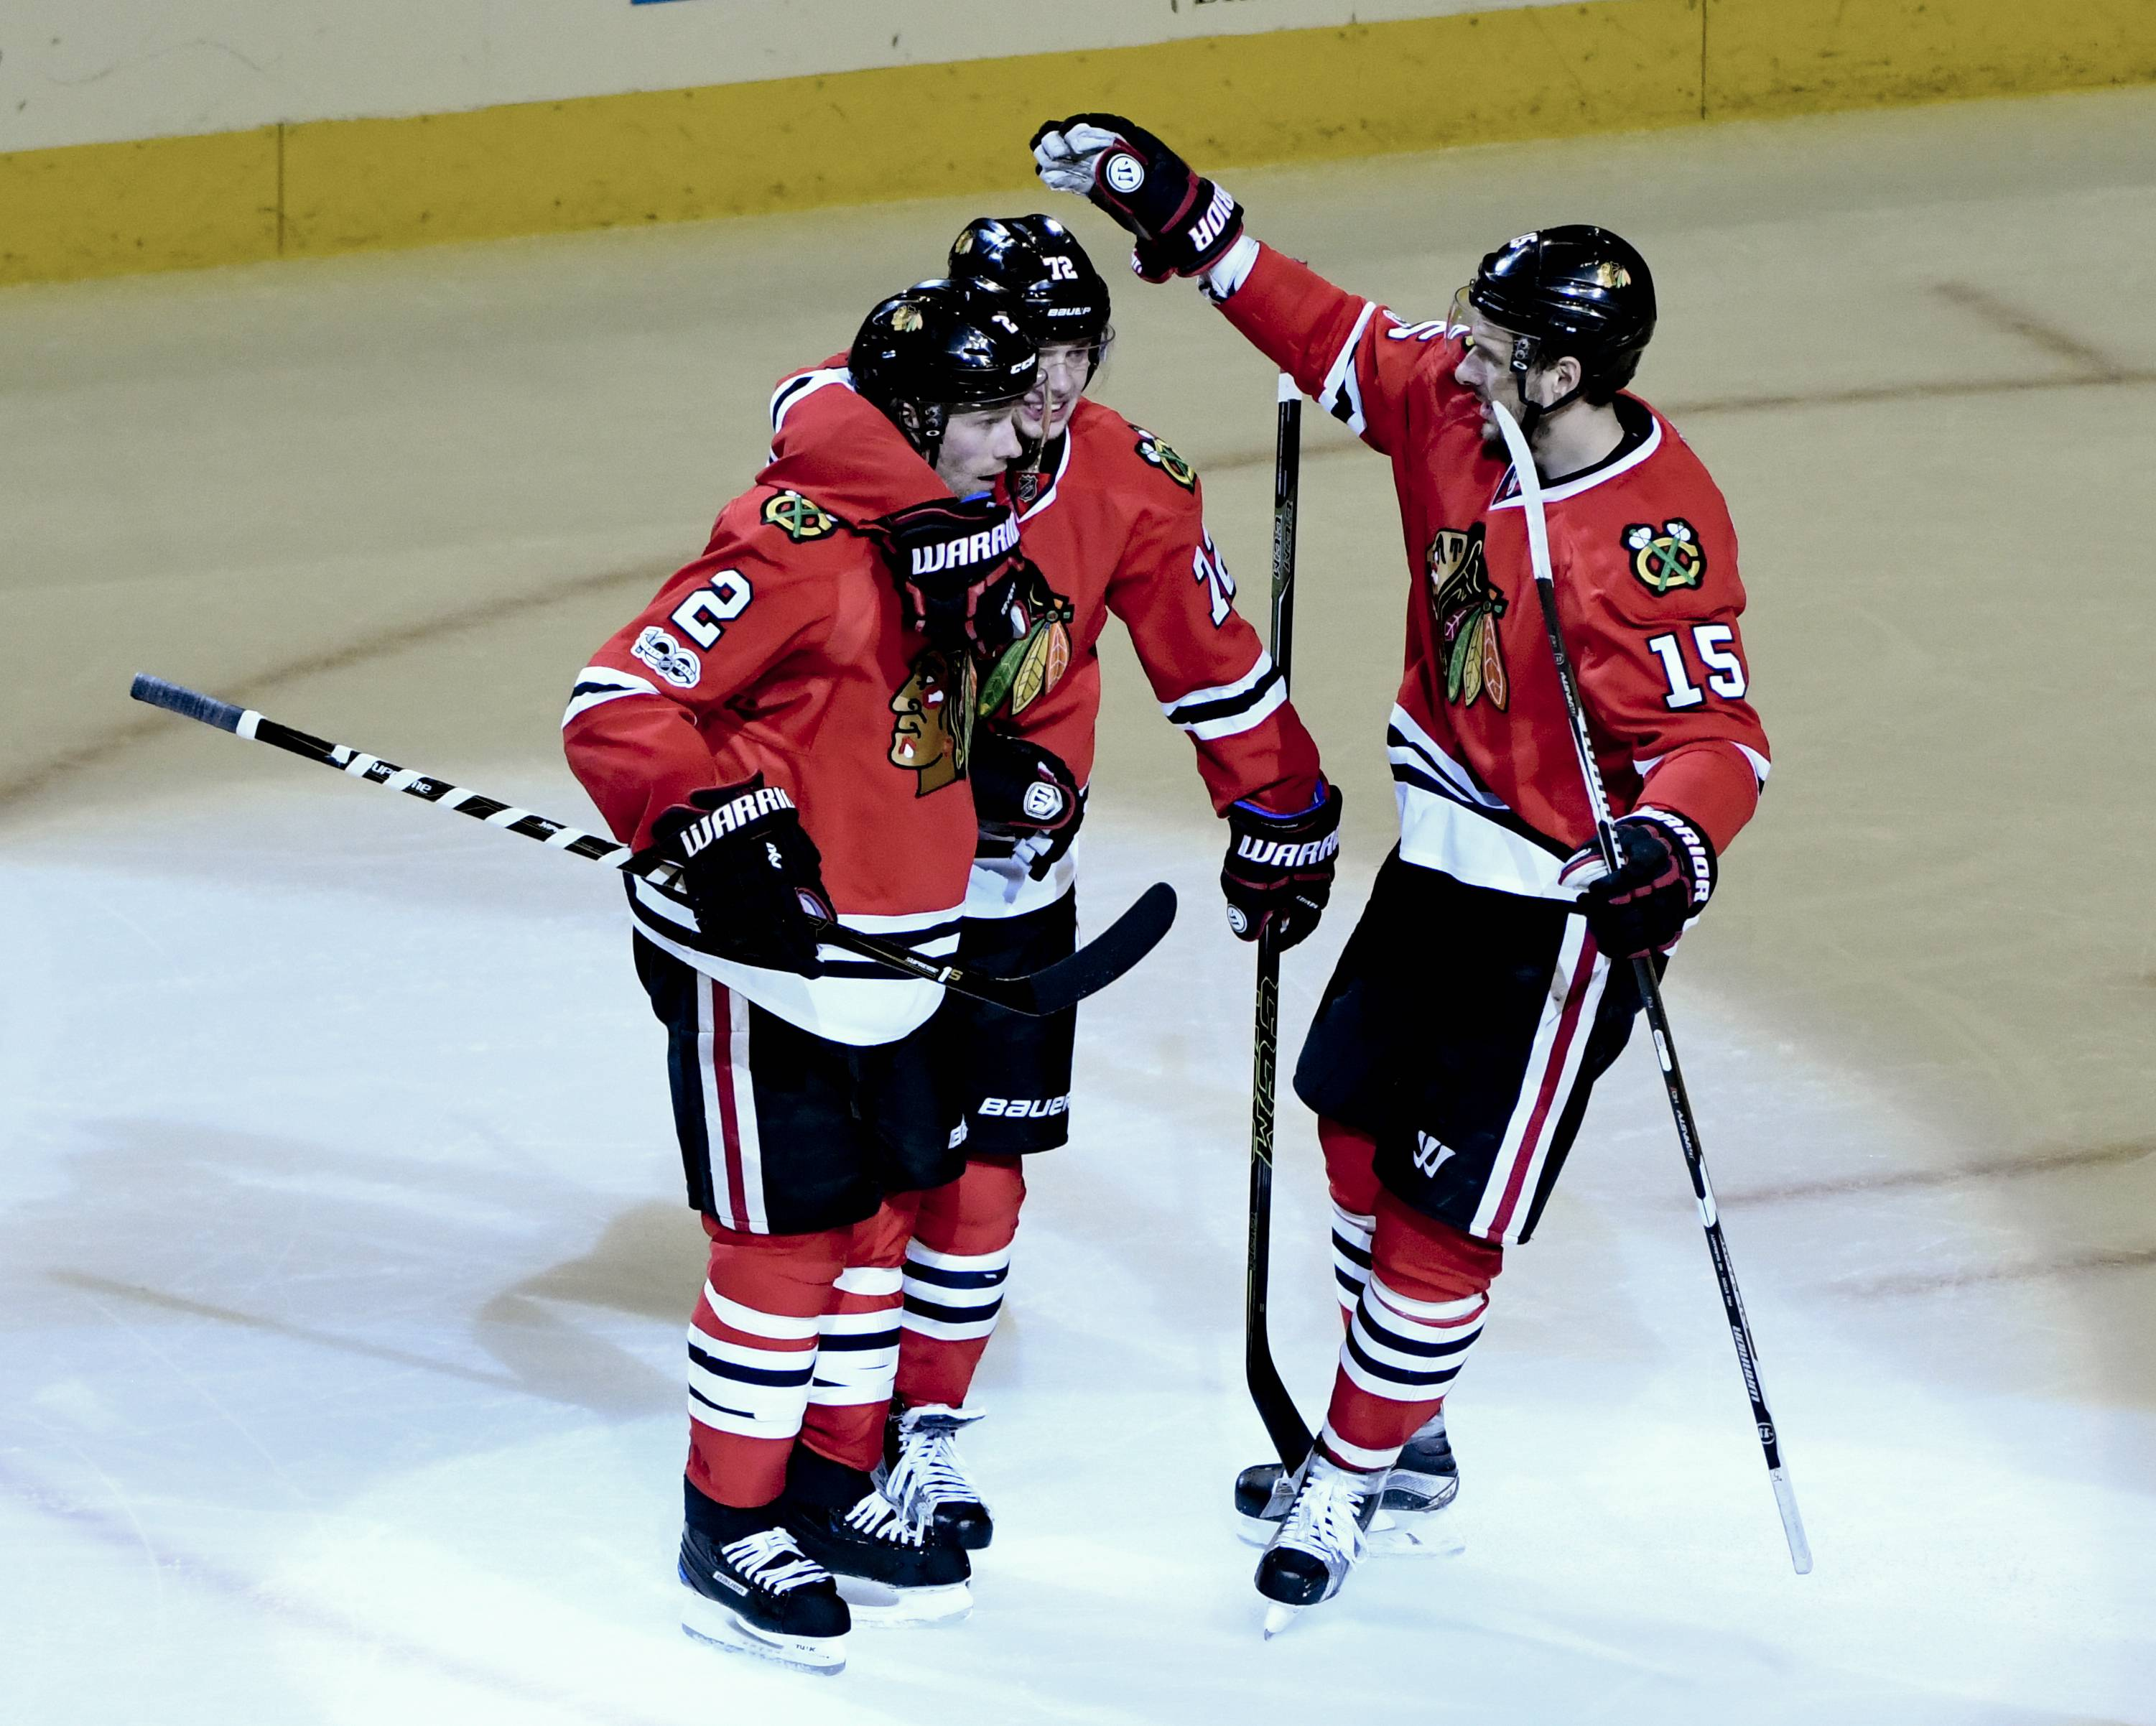 Chicago Blackhawks defenseman Duncan Keith (2) celebrates his overtime goal against the Detroit Red Wings with left wing Artemi Panarin, center, and center Artem Anisimov (15) in an NHL hockey game Tuesday, Jan. 10, 2017, in Chicago. The Blackhawks won 4-3.